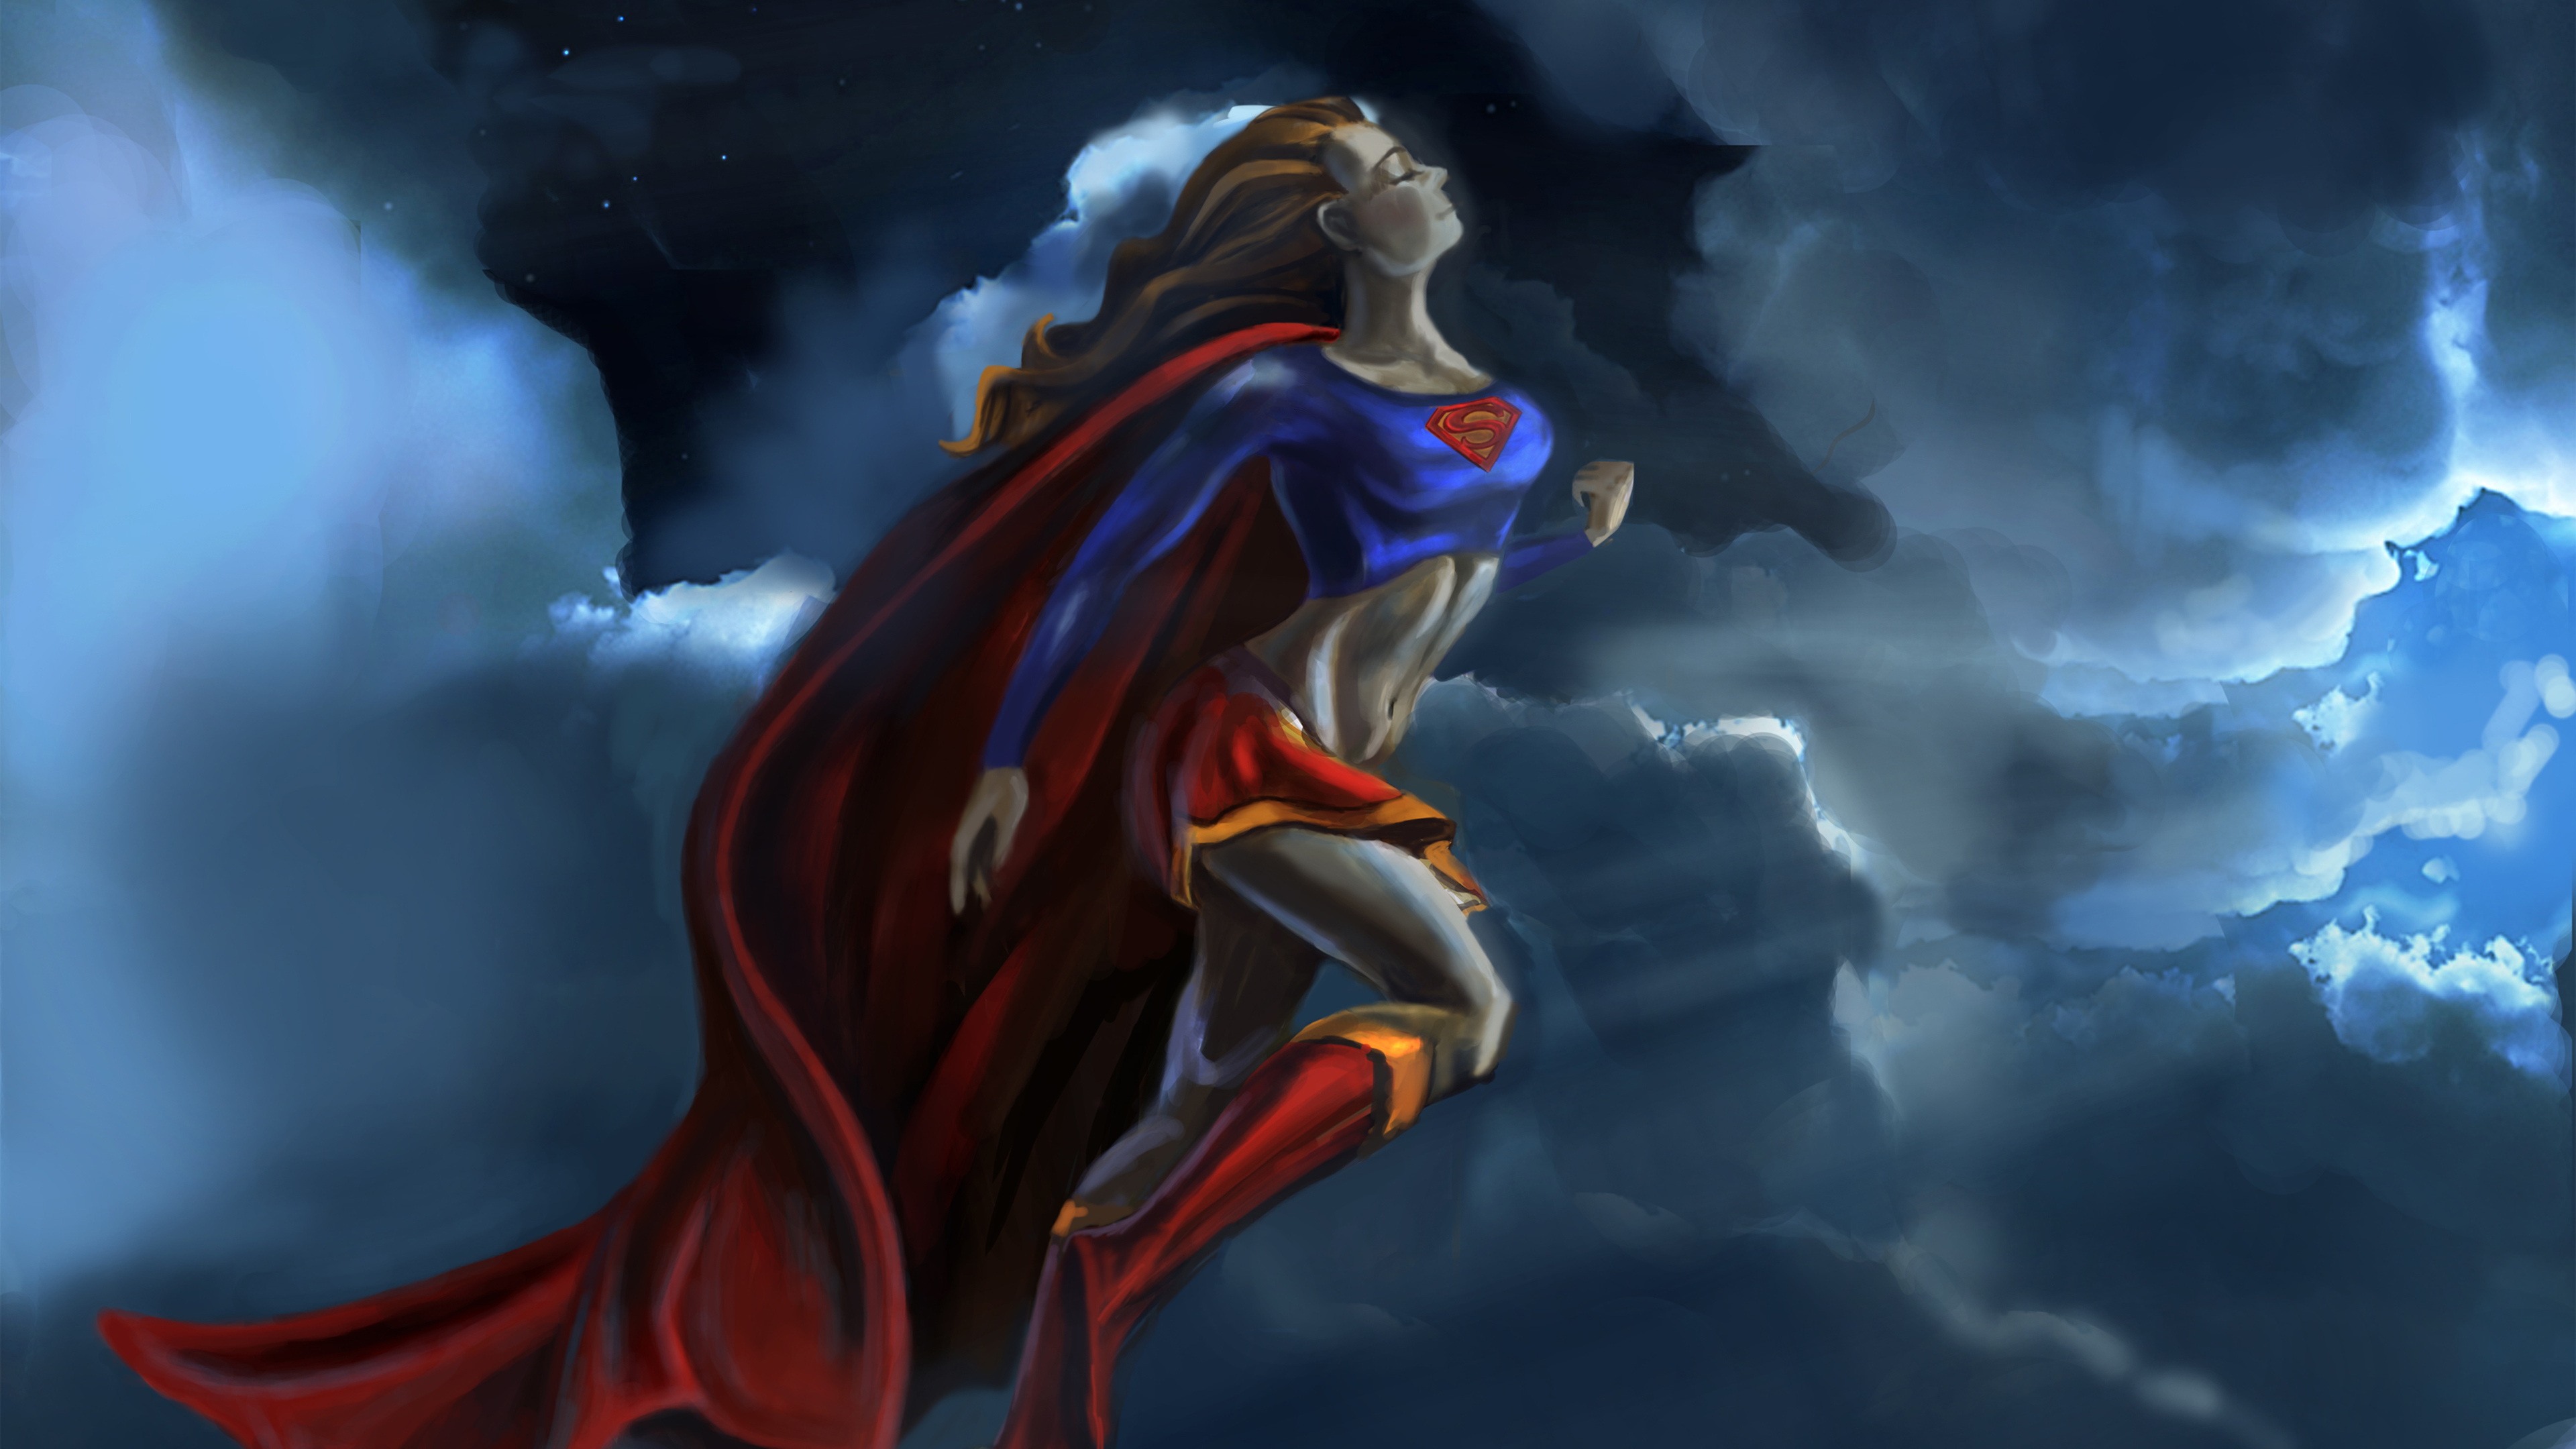 supergirl in the air 4k art 1544923148 - Supergirl In The Air 4K Art - superheroes wallpapers, supergirl wallpapers, hd-wallpapers, digital art wallpapers, deviantart wallpapers, artwork wallpapers, 4k-wallpapers